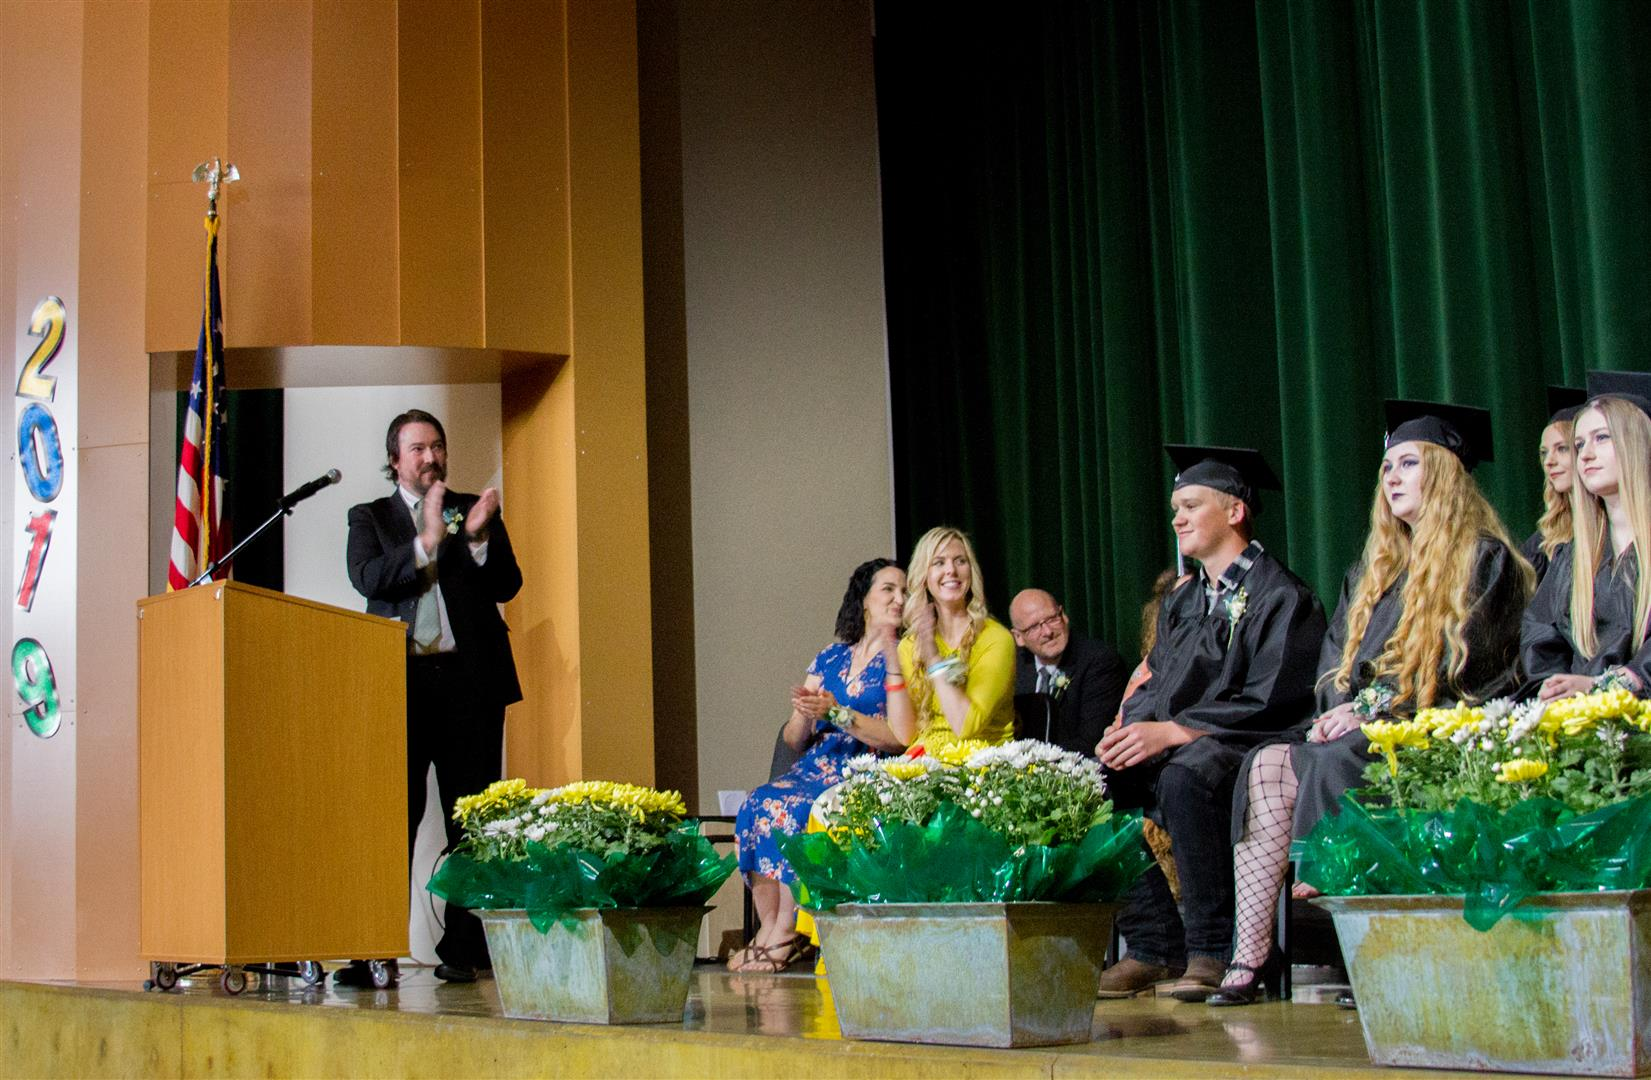 1560449991-team-high-class-of-2019-commencement-10__large_